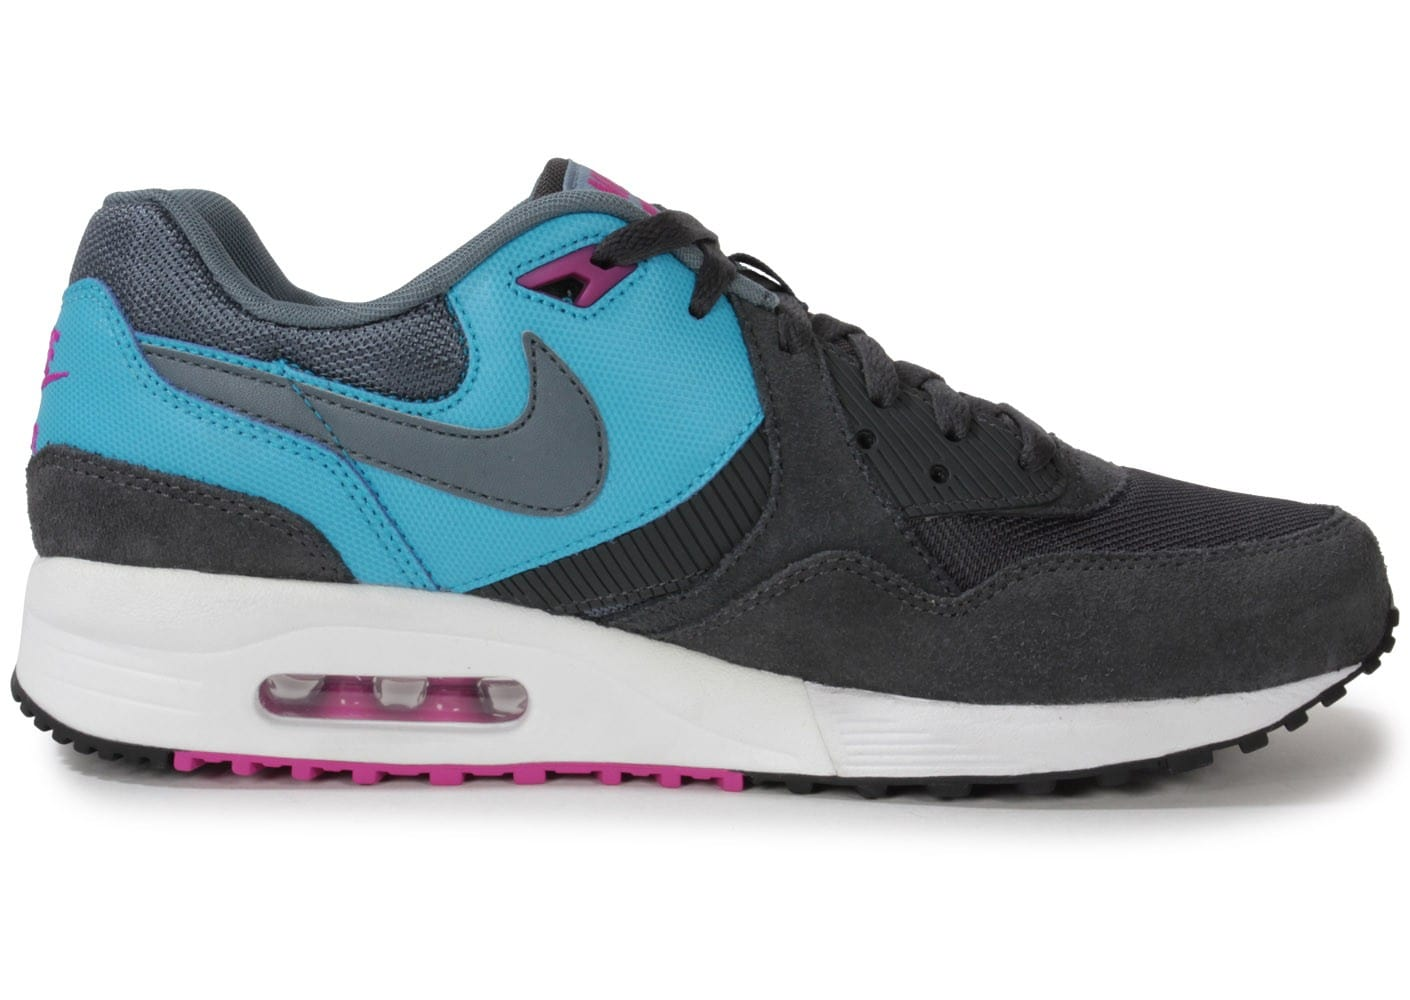 nike air max light grise et bleue chaussures baskets homme chausport. Black Bedroom Furniture Sets. Home Design Ideas